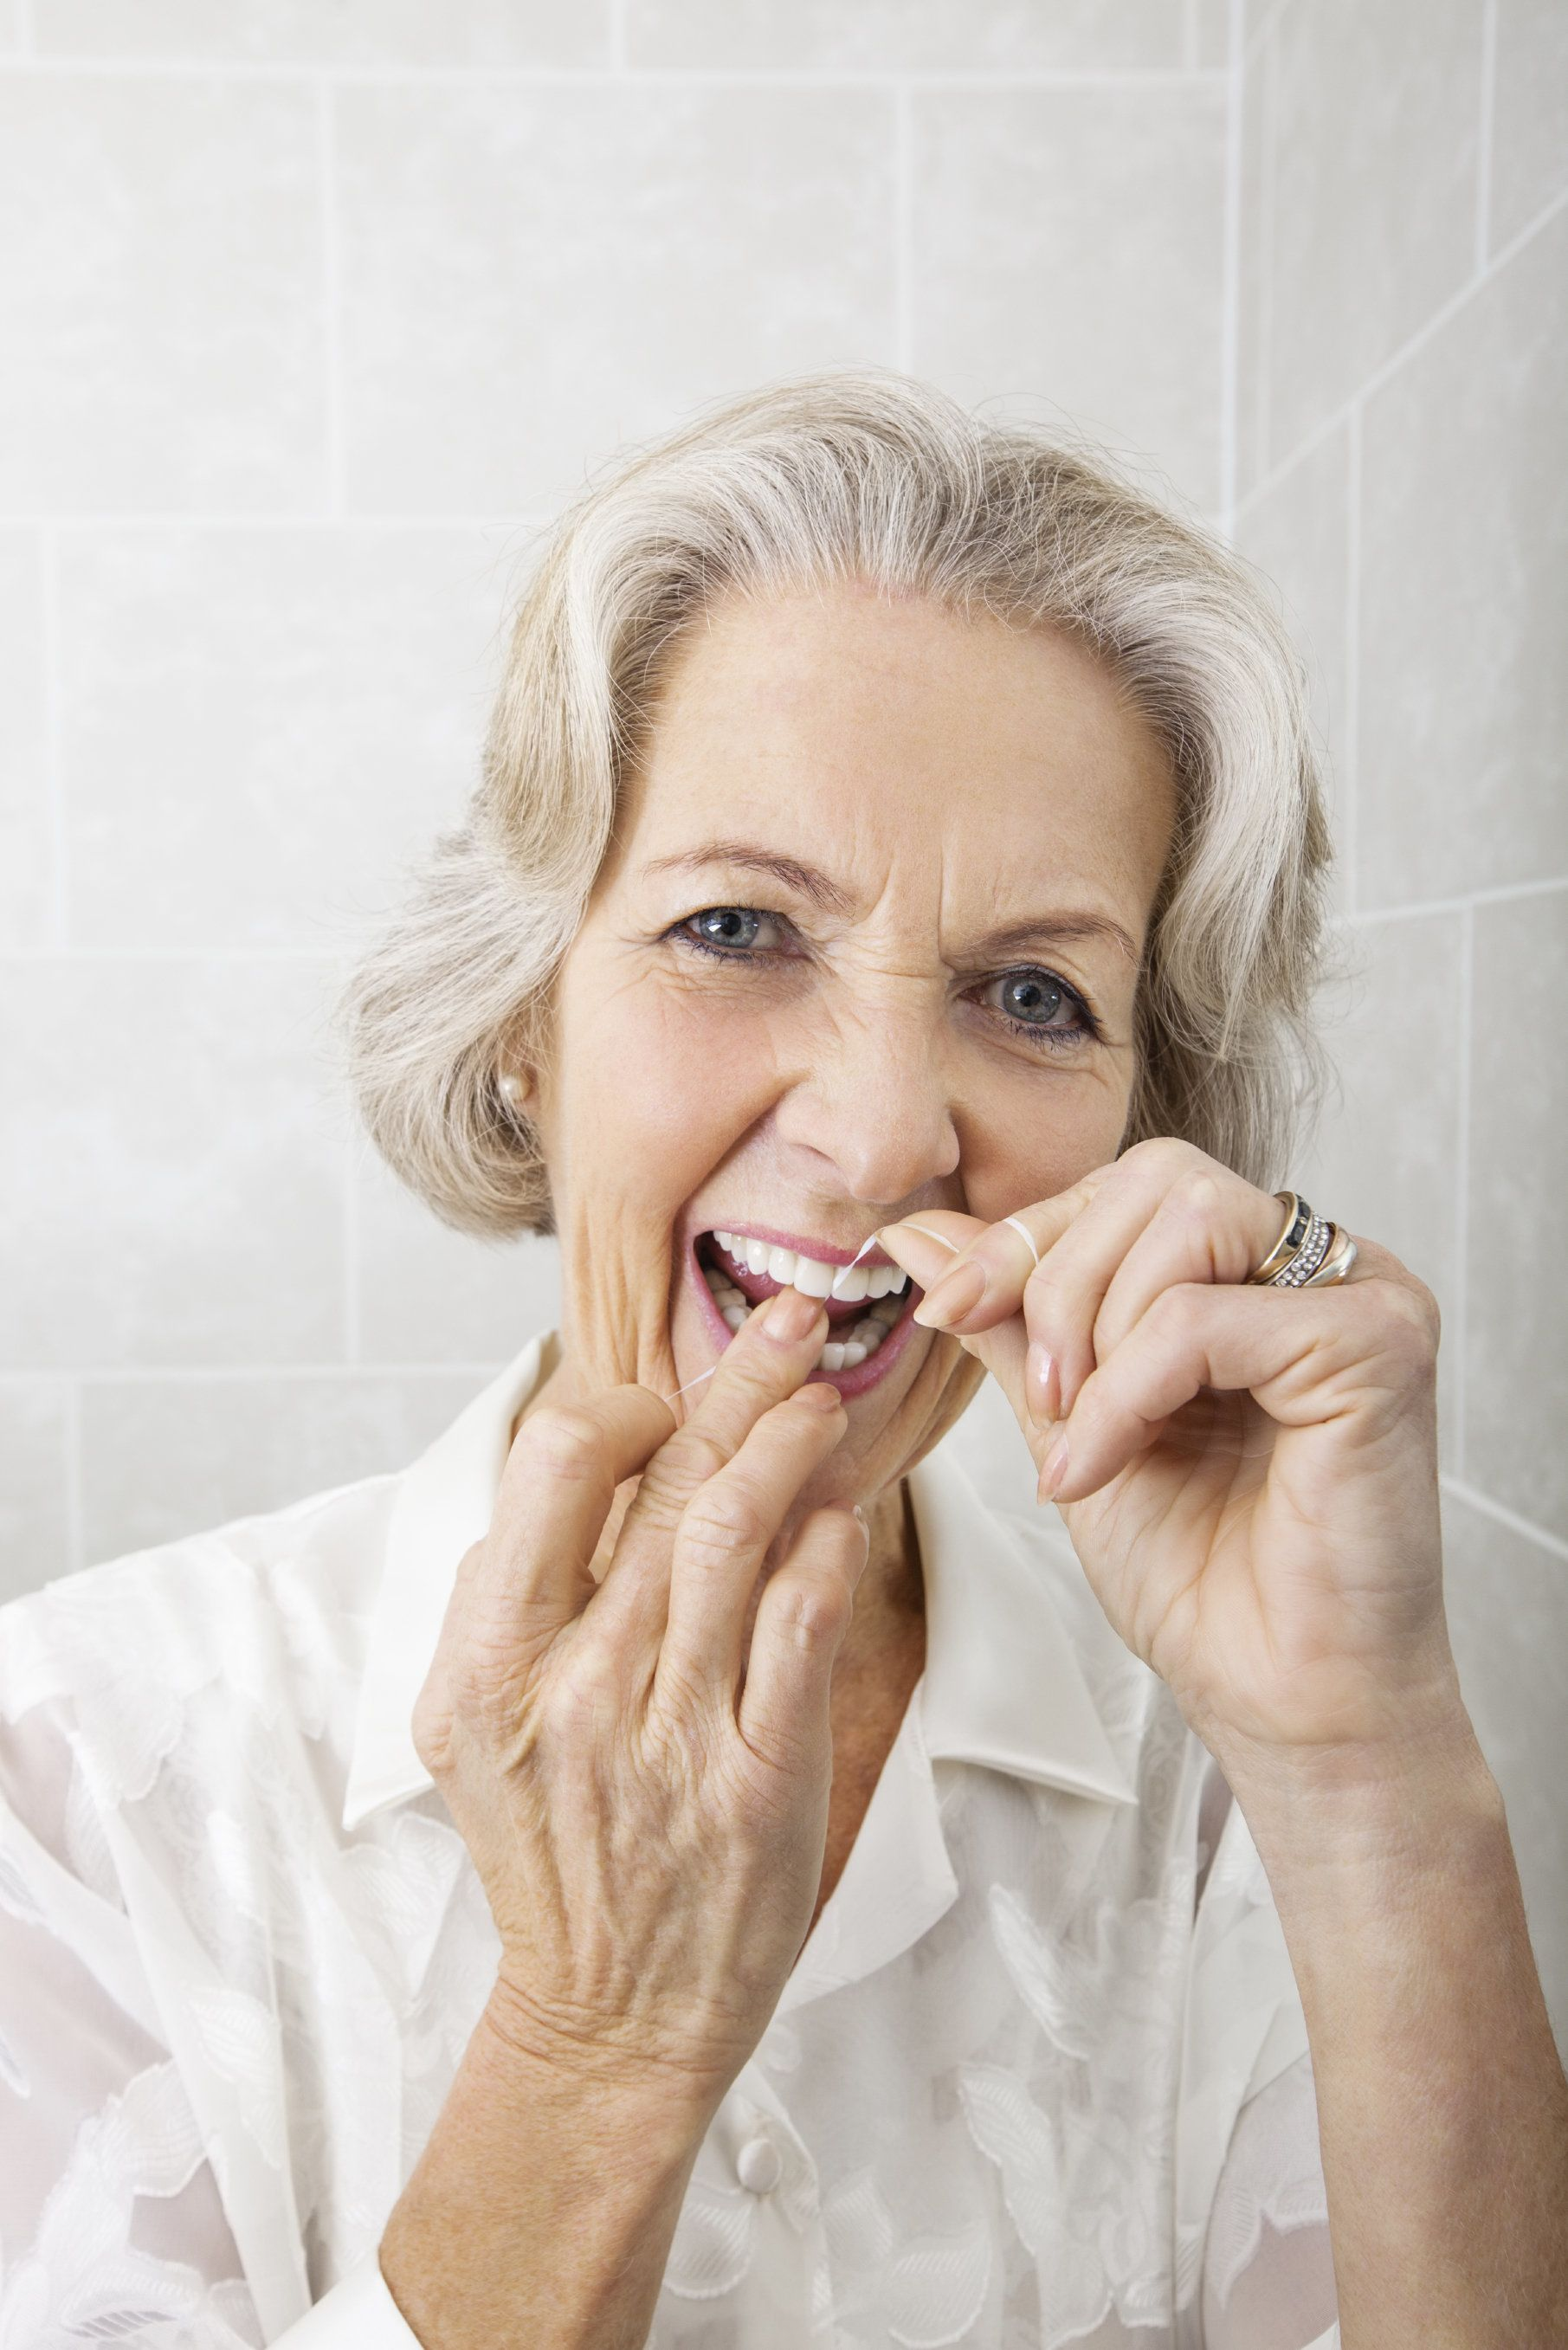 A woman smiling and using dental floss